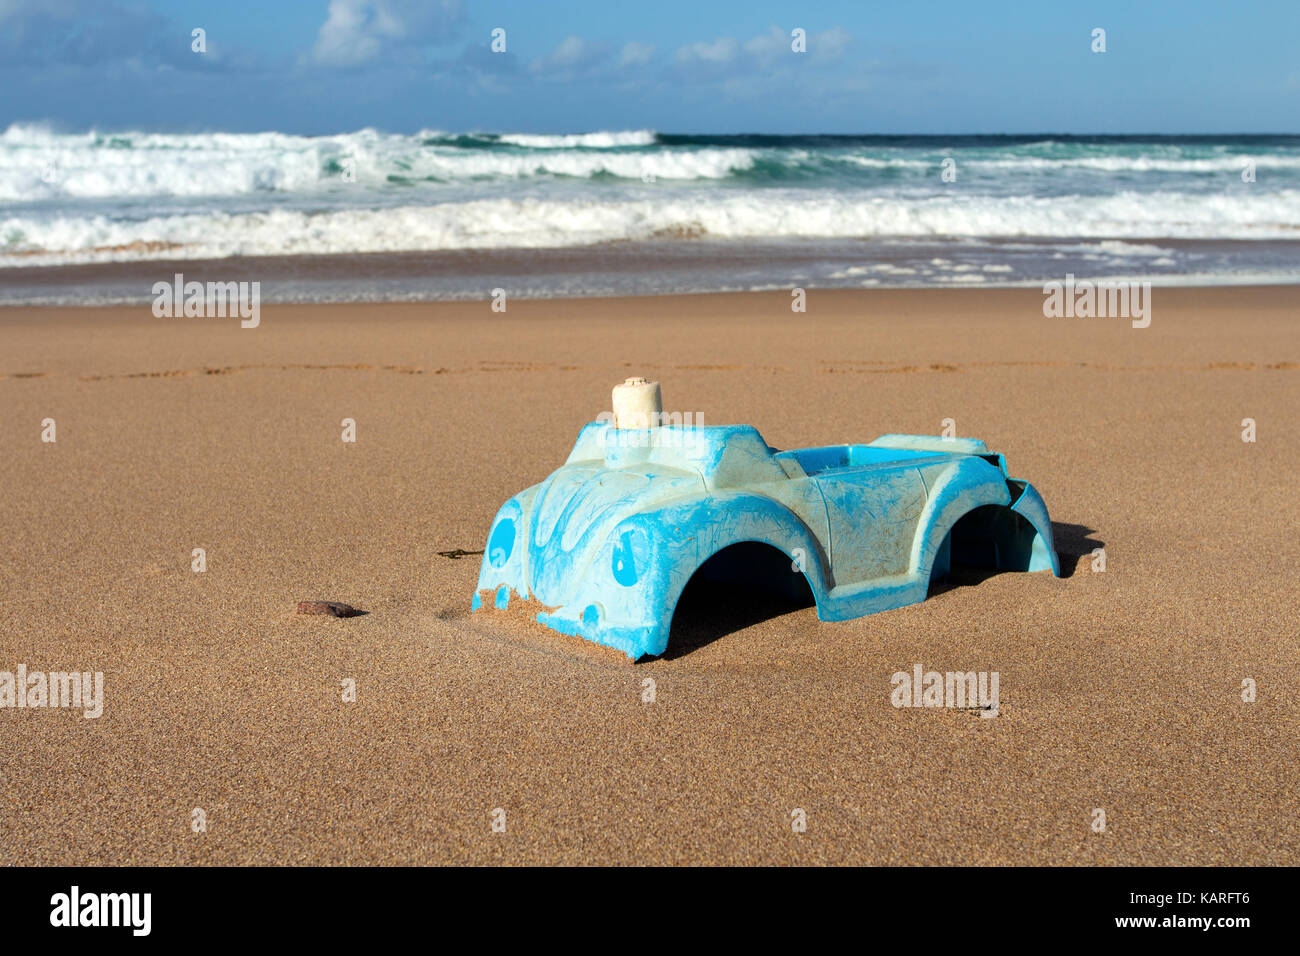 Plastic Toy Car Washed up on a Remote Scottish Beach UK - Stock Image